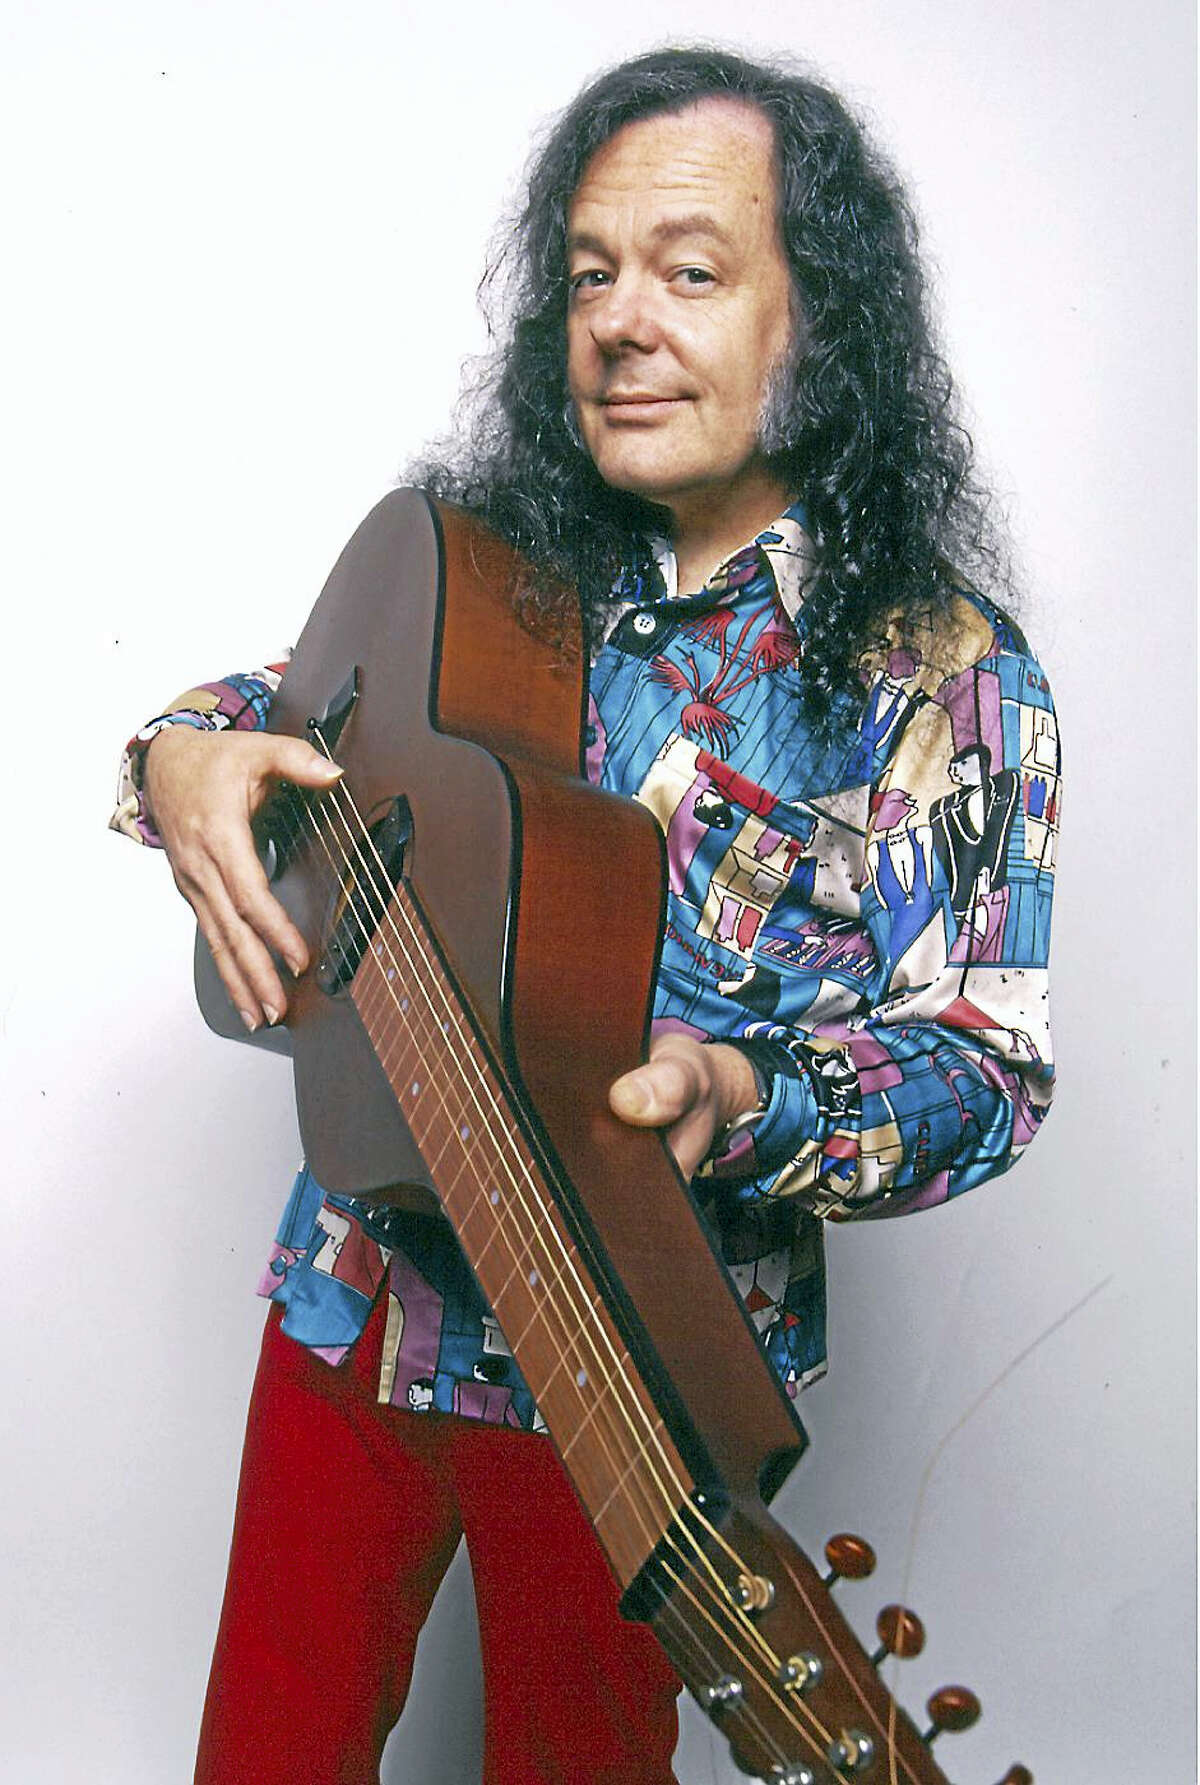 Contributed photo - David LinleyMusician David Lindley, who is best known for his work with Jackson Browne, Warren Zevon, and other rock musicians, will perform at Stage One in Fairfield on Sunday night March 19.